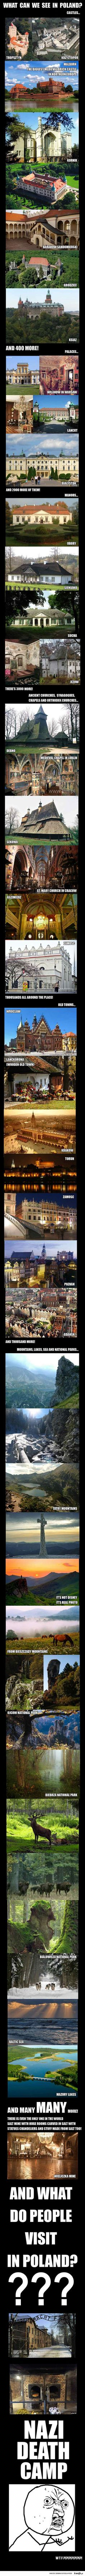 Places in Poland